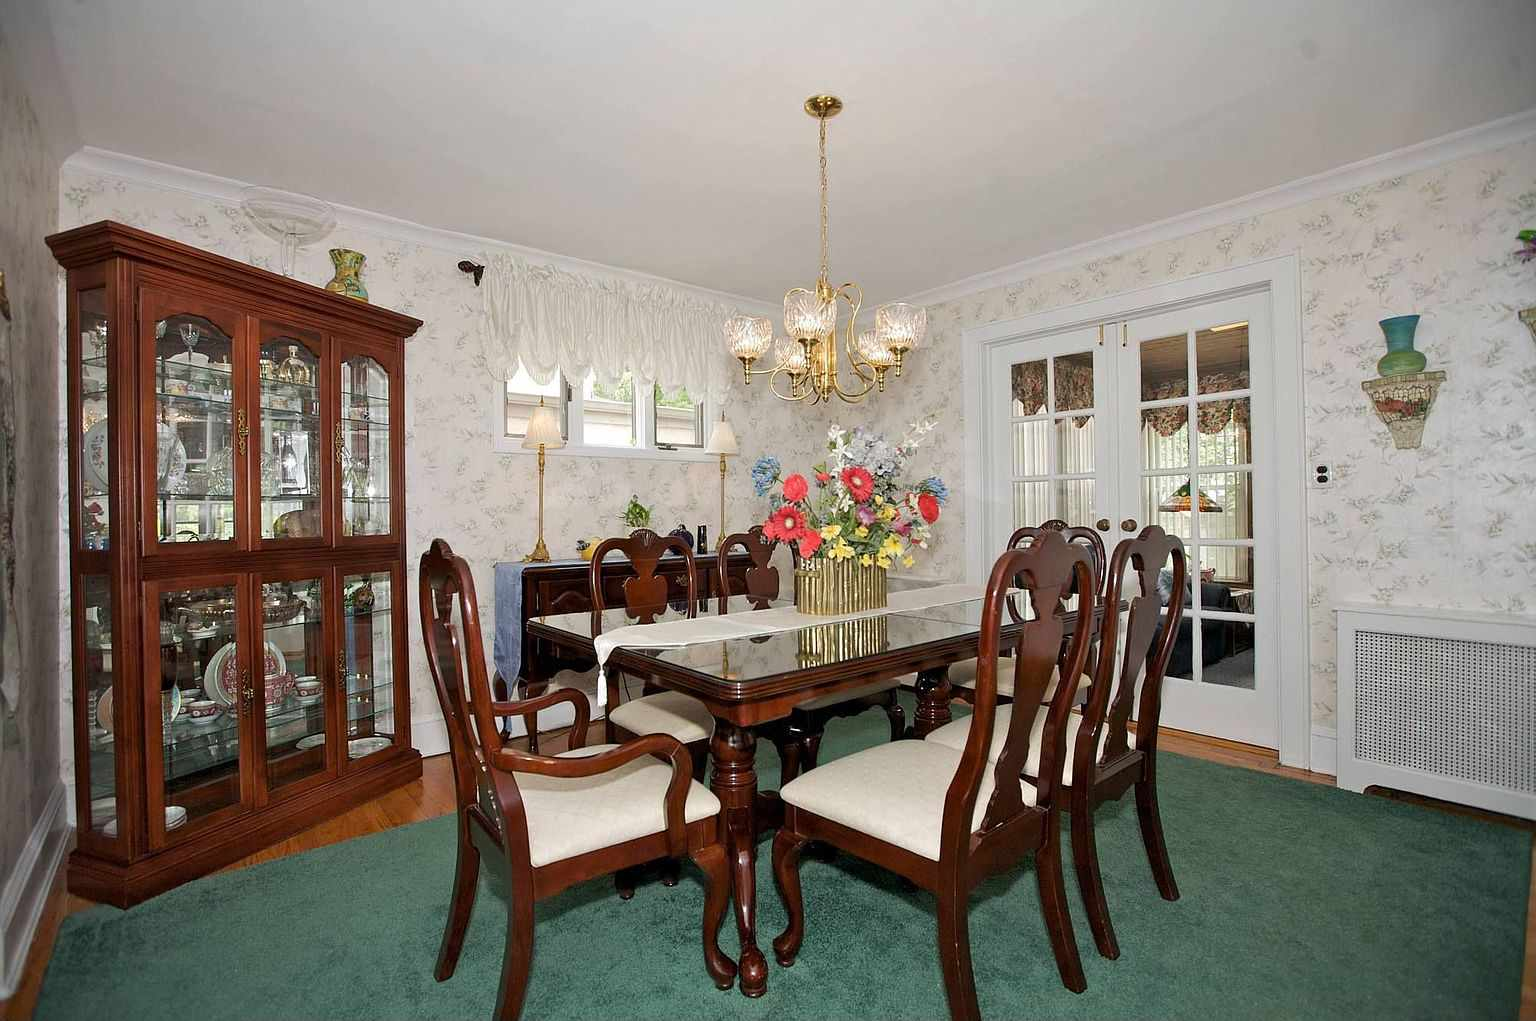 Before shot of 1930s dining room.